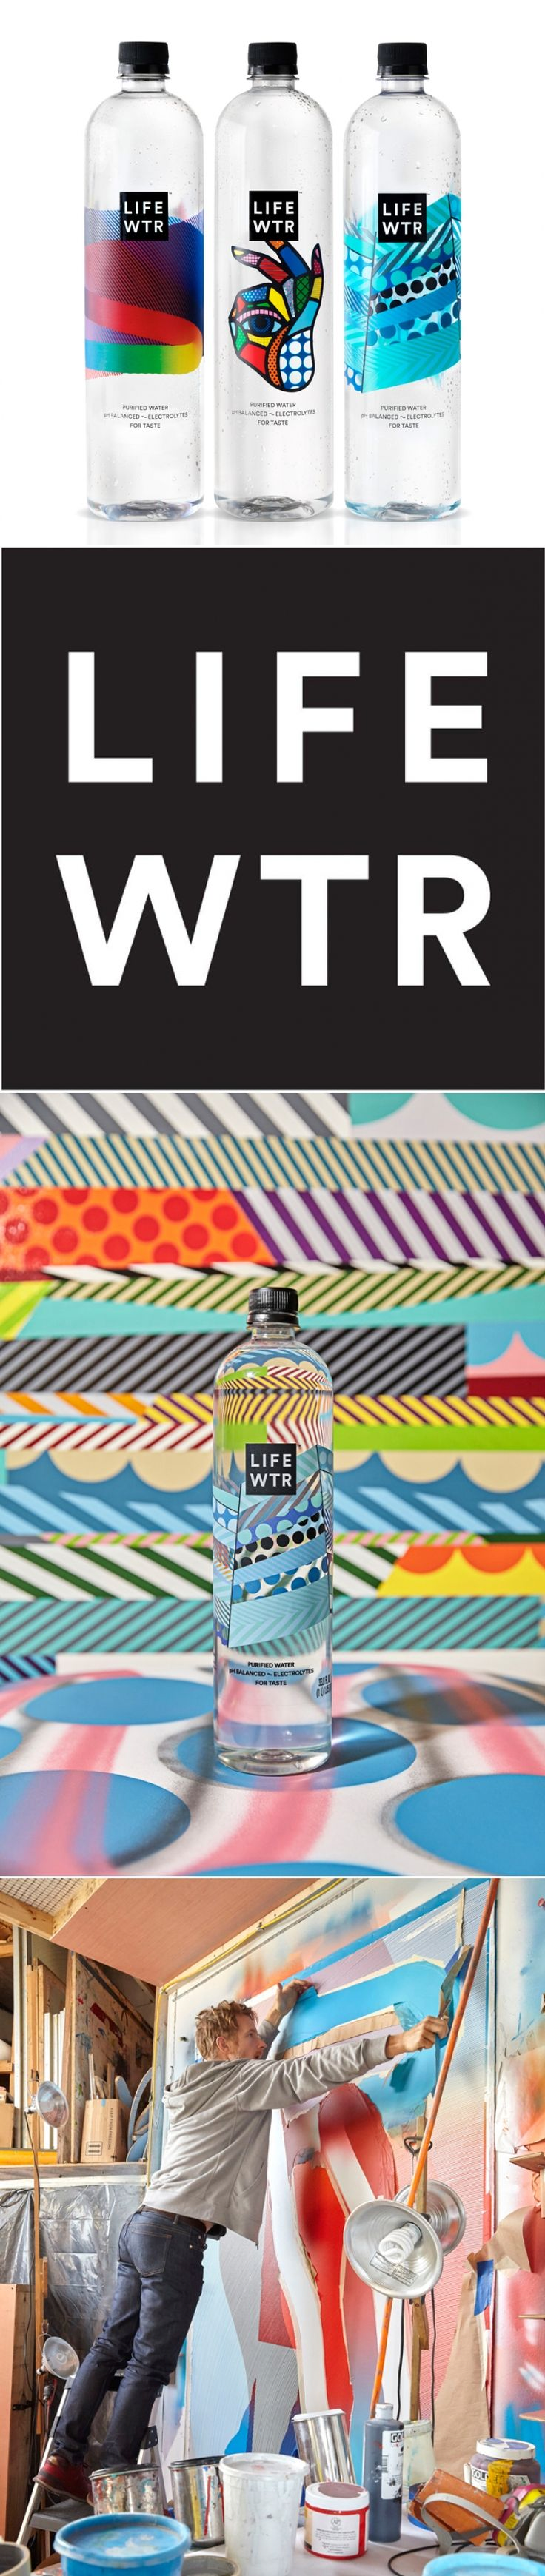 Pepsico Collaborates with Artists on their New Brand LIFEWTR — The Dieline - Branding & Packaging Design